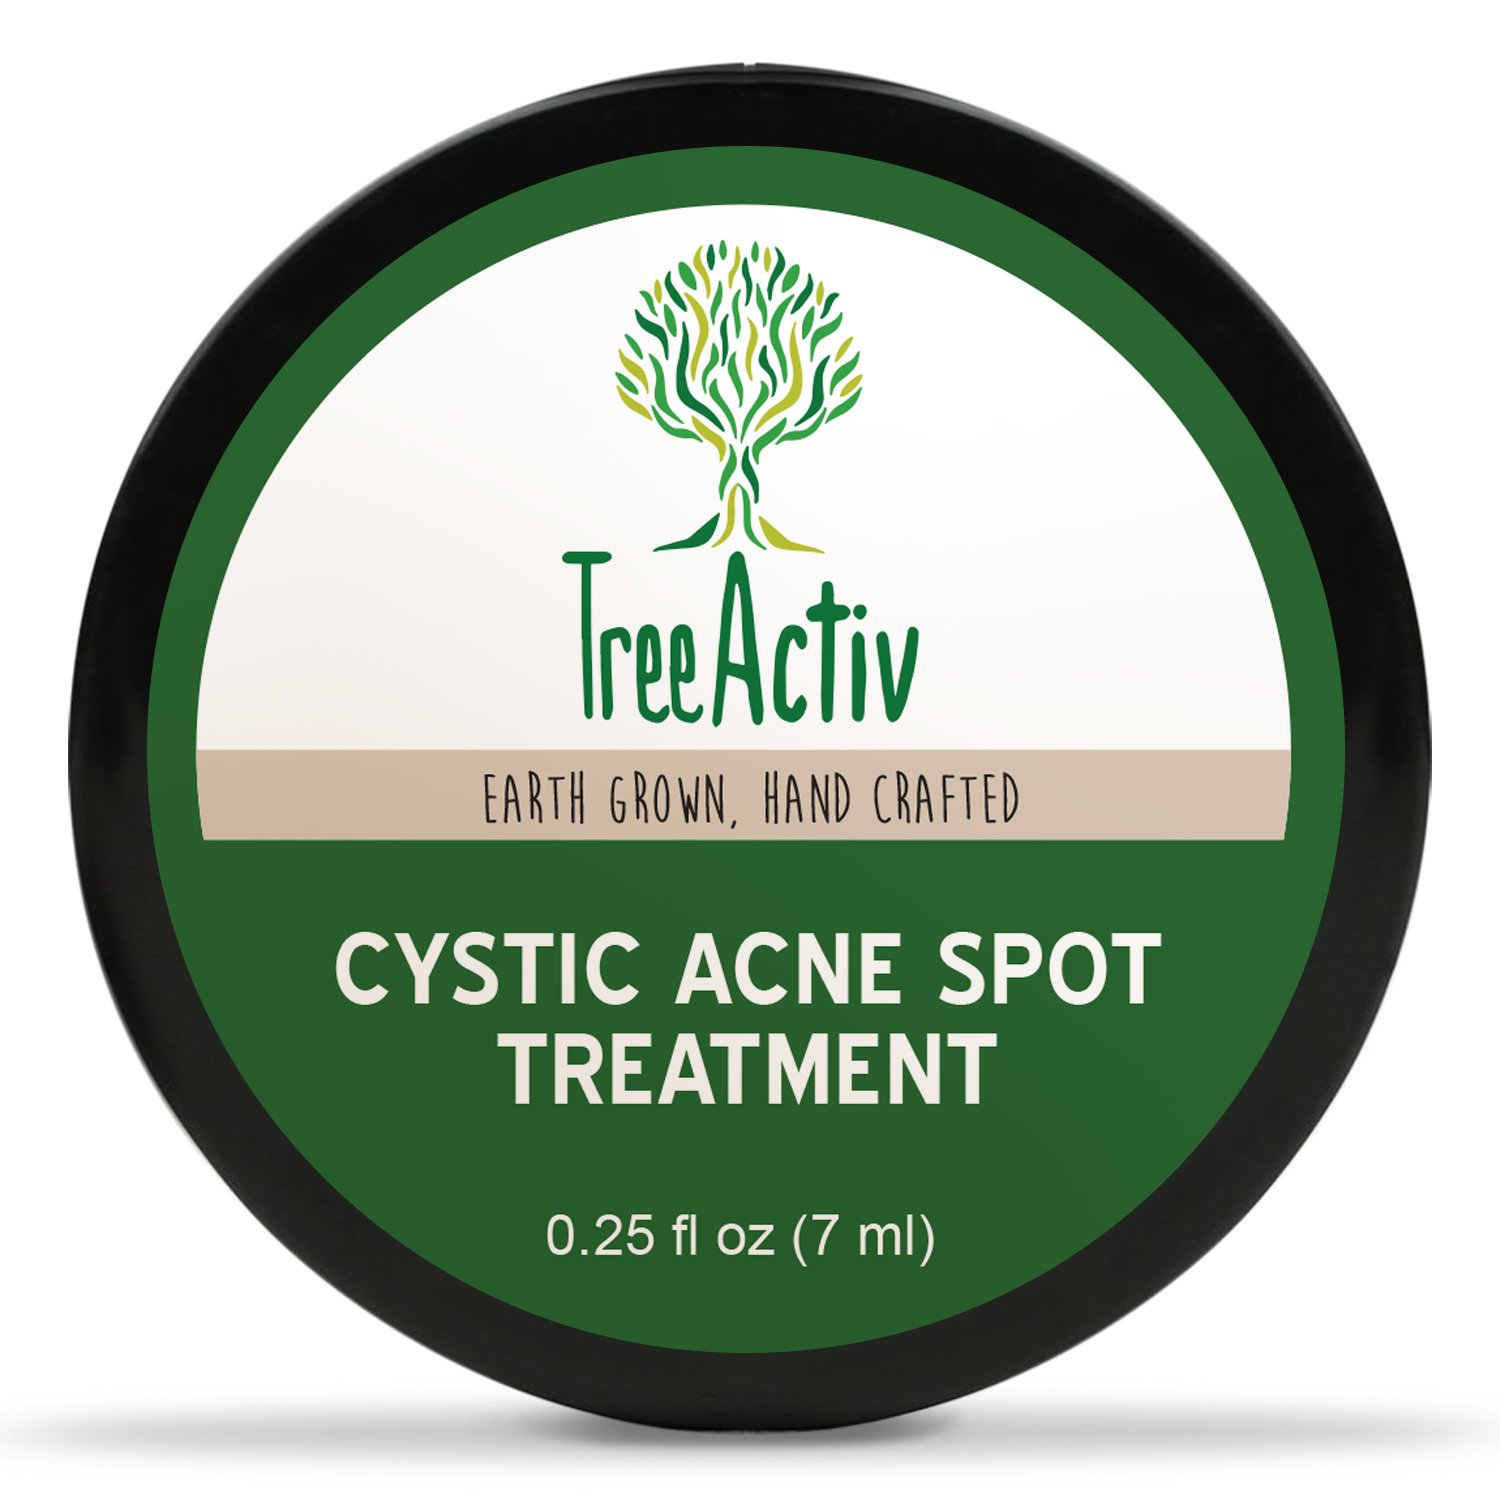 treeactiv-Best Acne Products for Teenage Girl